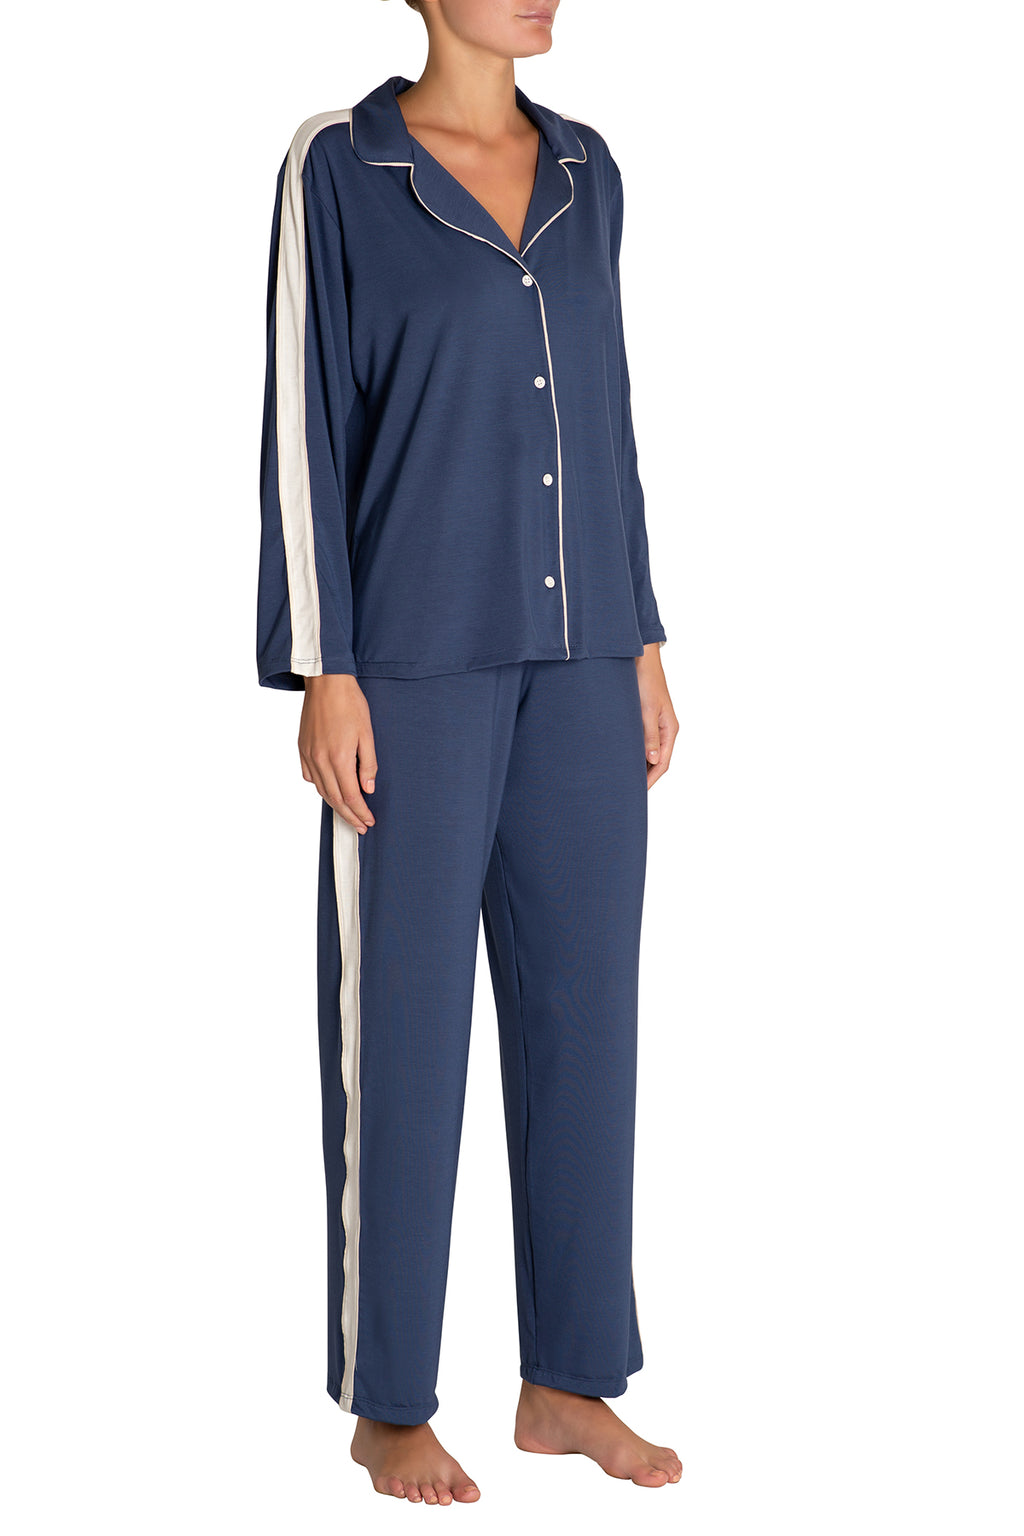 Eberjey Gisele Long Athletics PJ Set - Crown Blue/Nude Tint